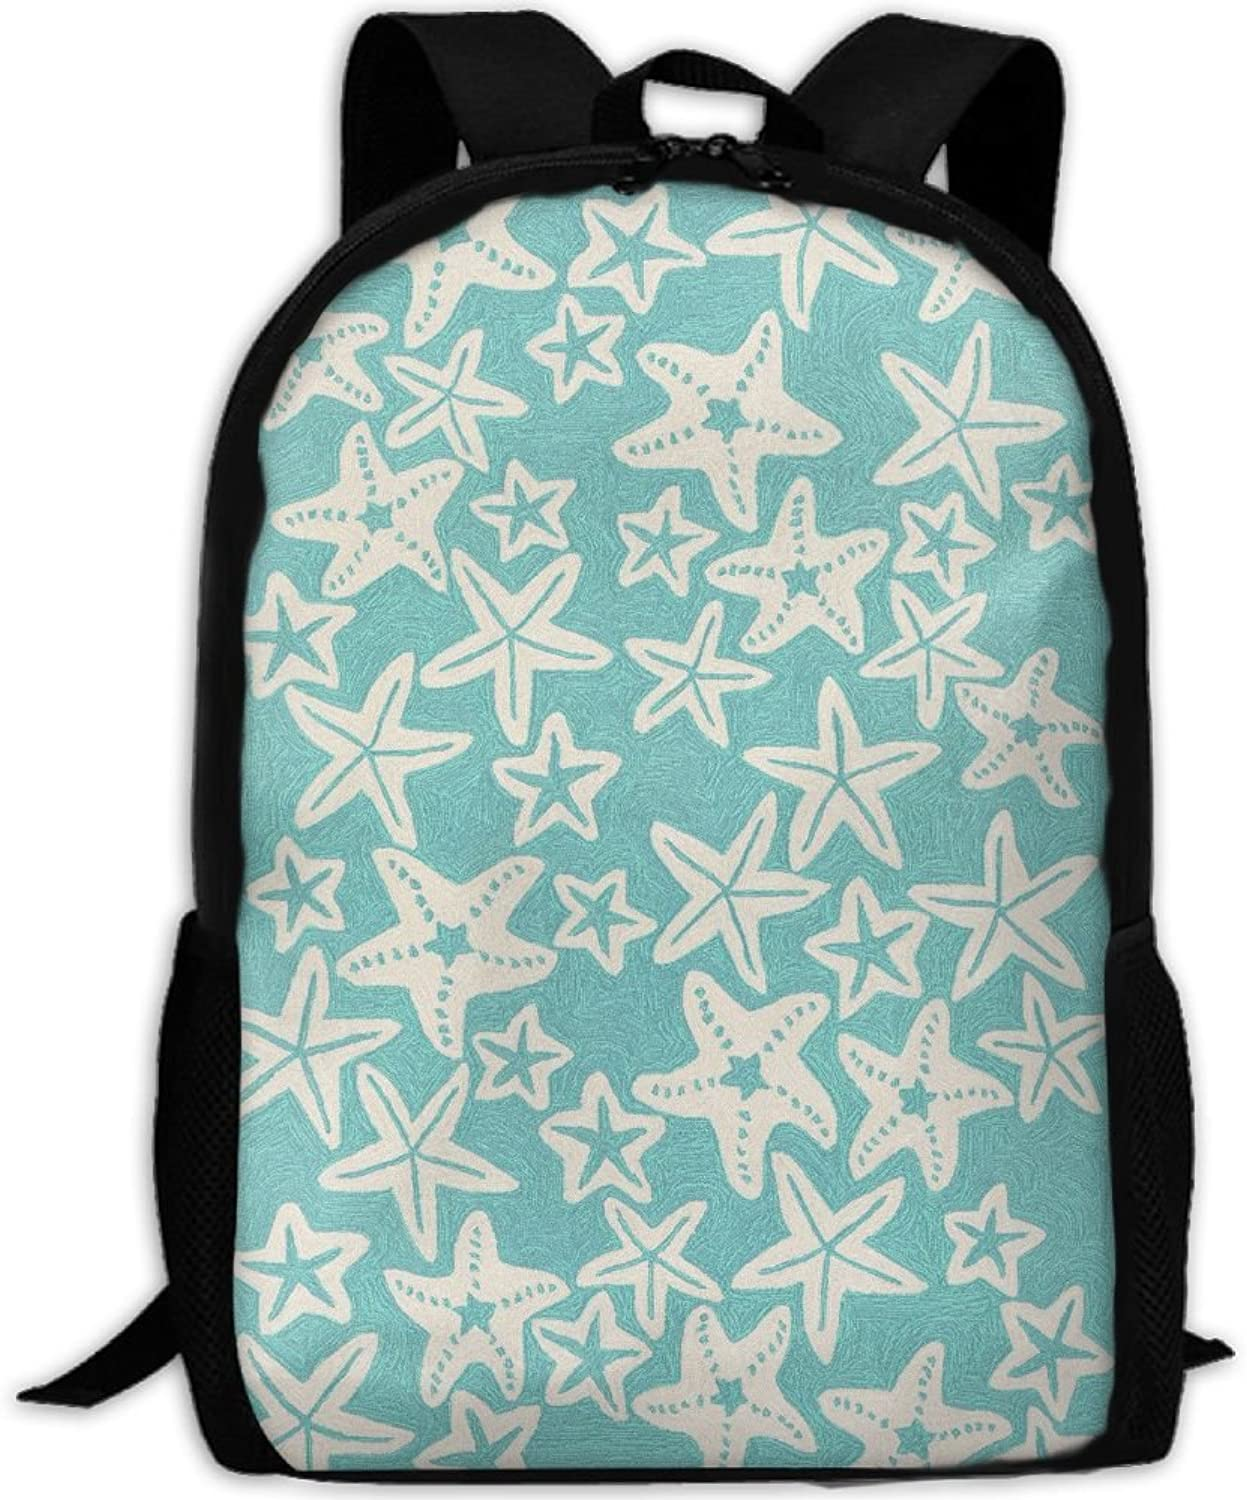 Adult Backpack Green Starfish College Daypack Oxford Bag Unisex Business Travel Sports Bag with Adjustable Strap